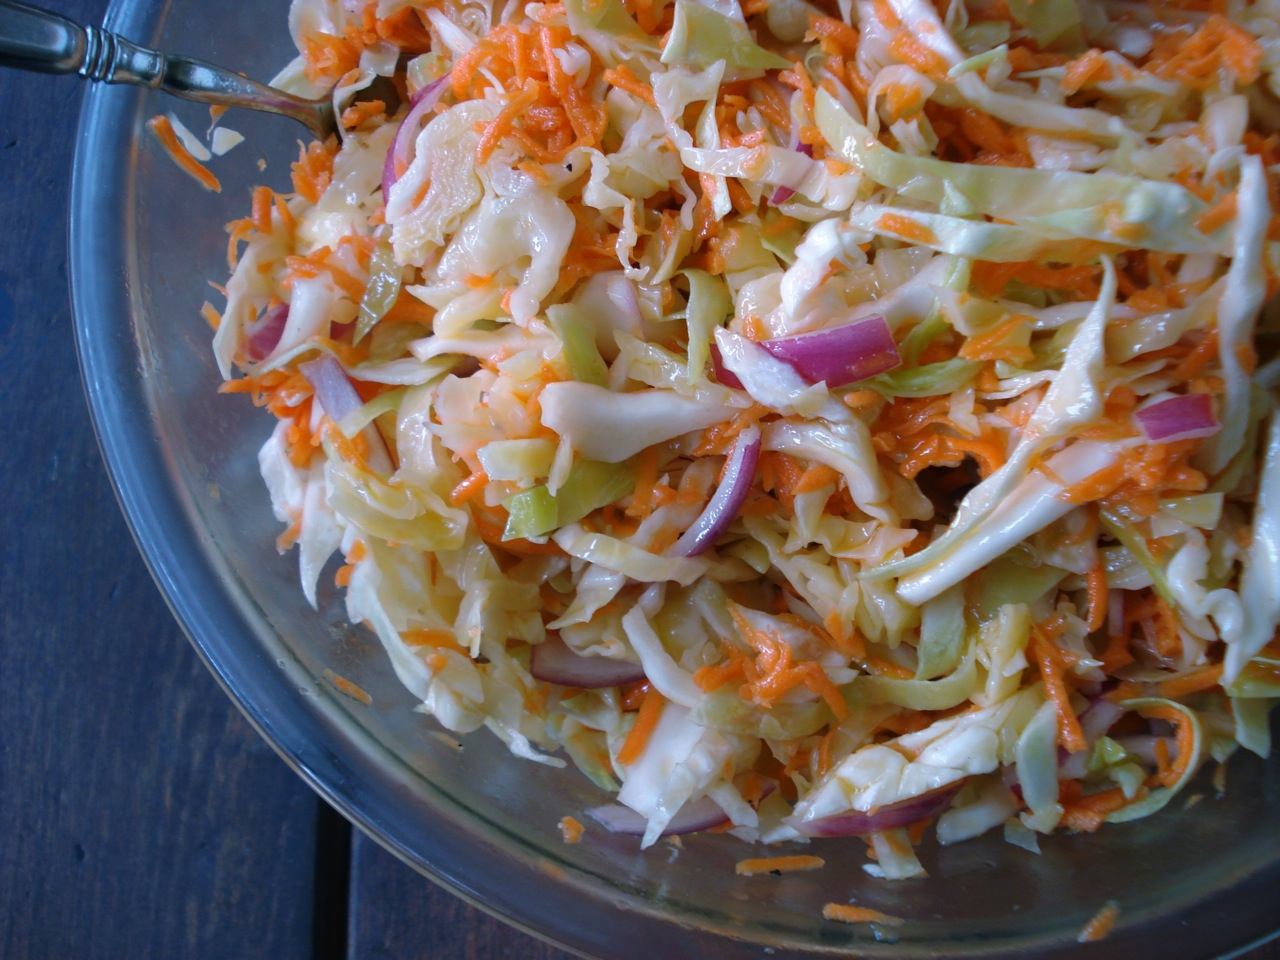 Tangy-Sweet Coleslaw